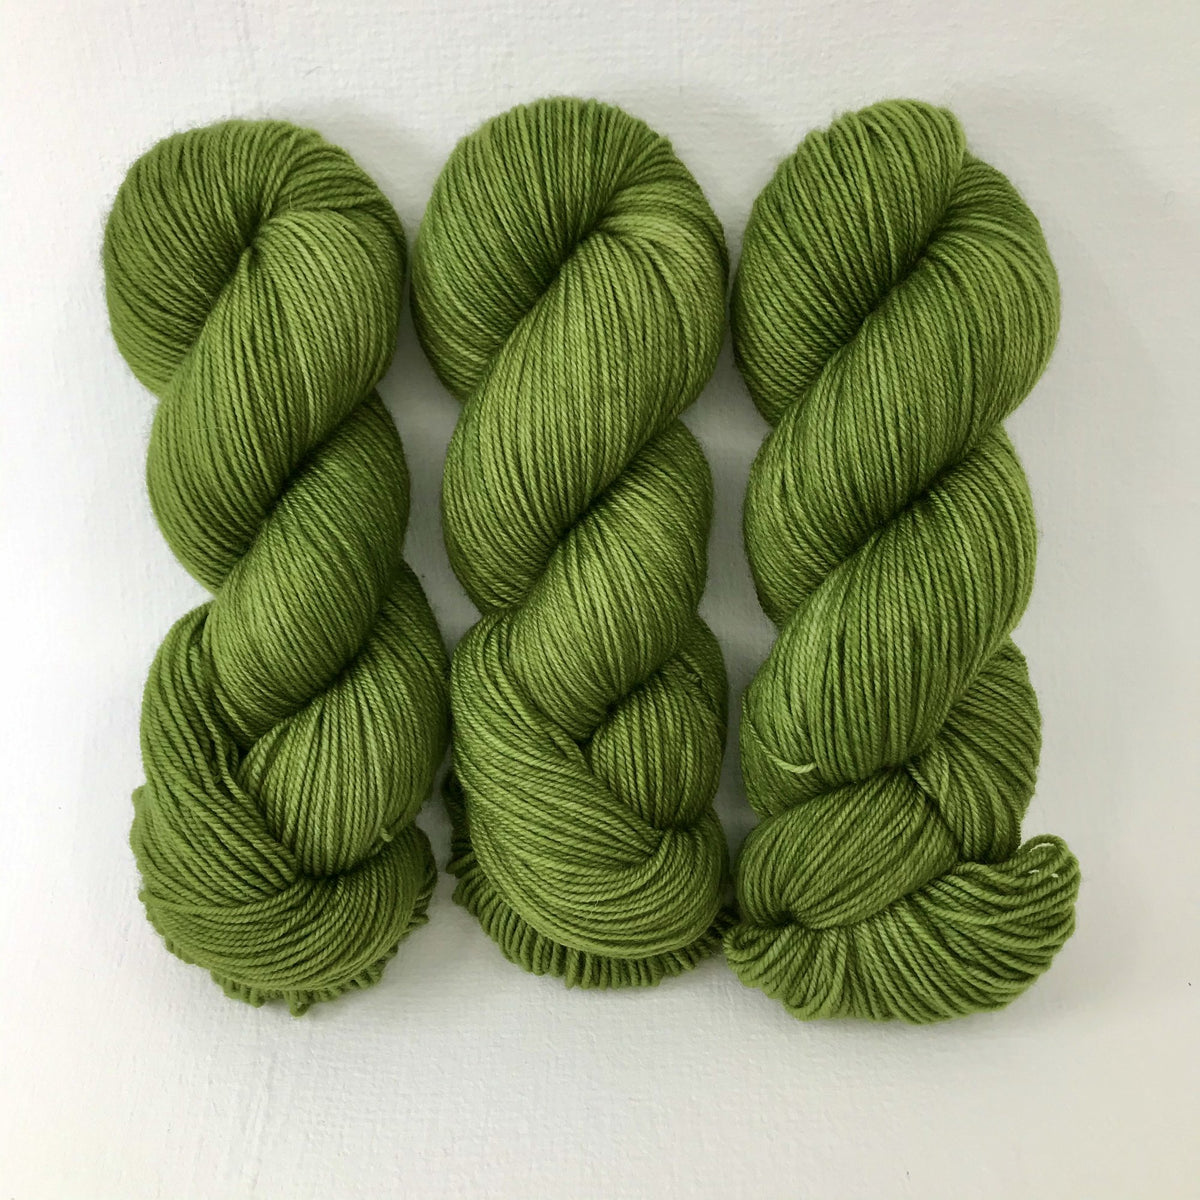 Mossy Bank - Nettle Soft DK - Dyed Stock